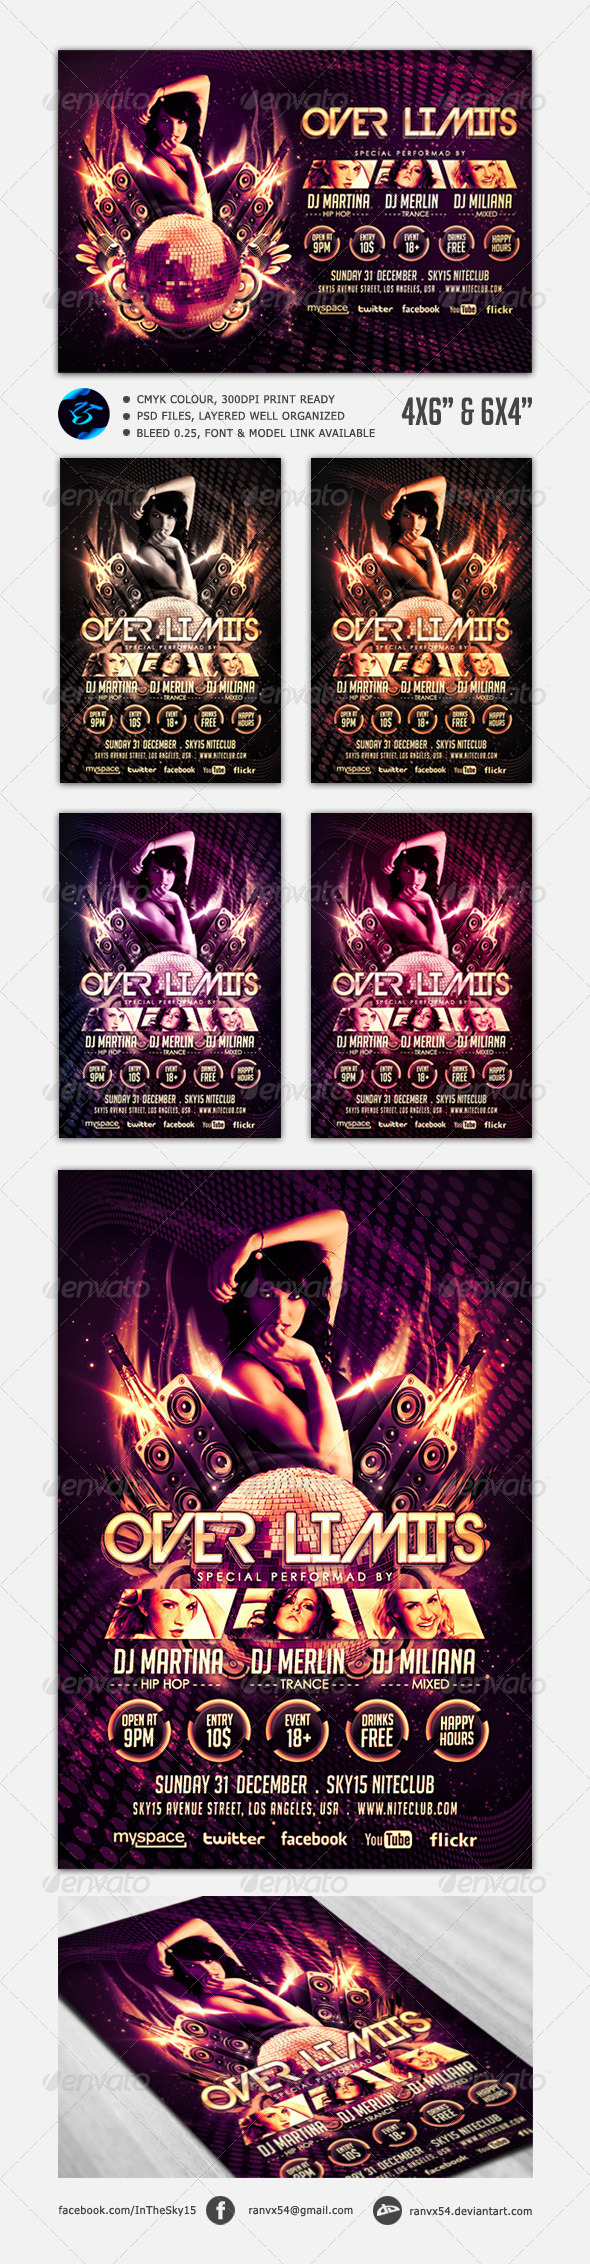 Over Limits Flyer Template - Clubs & Parties Events